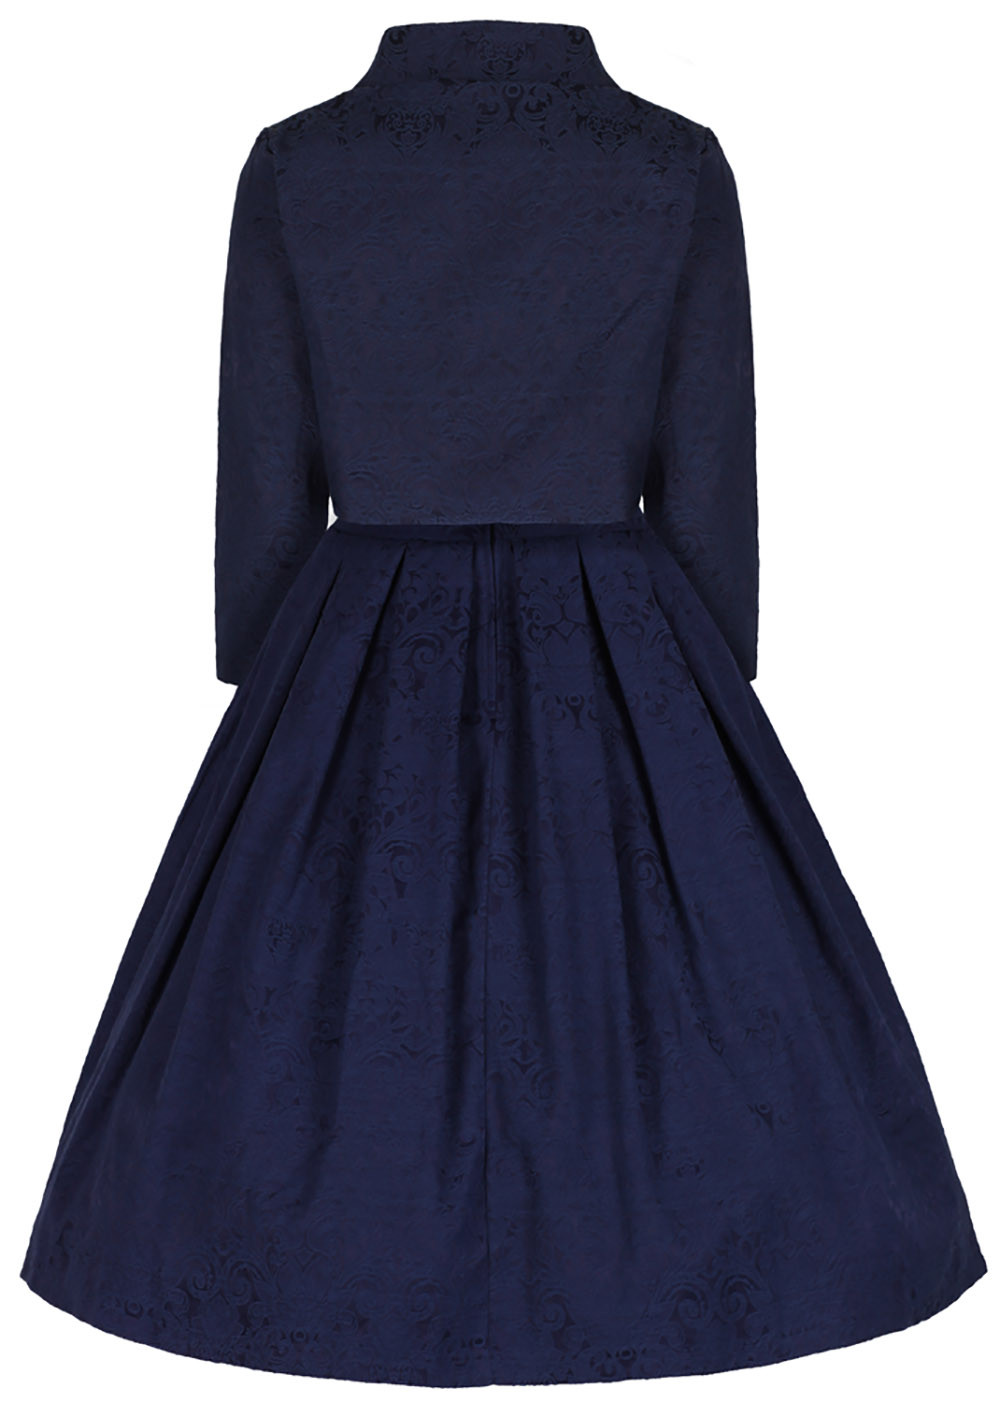 the ultimate Jackie O style twinset σε μπλε navy